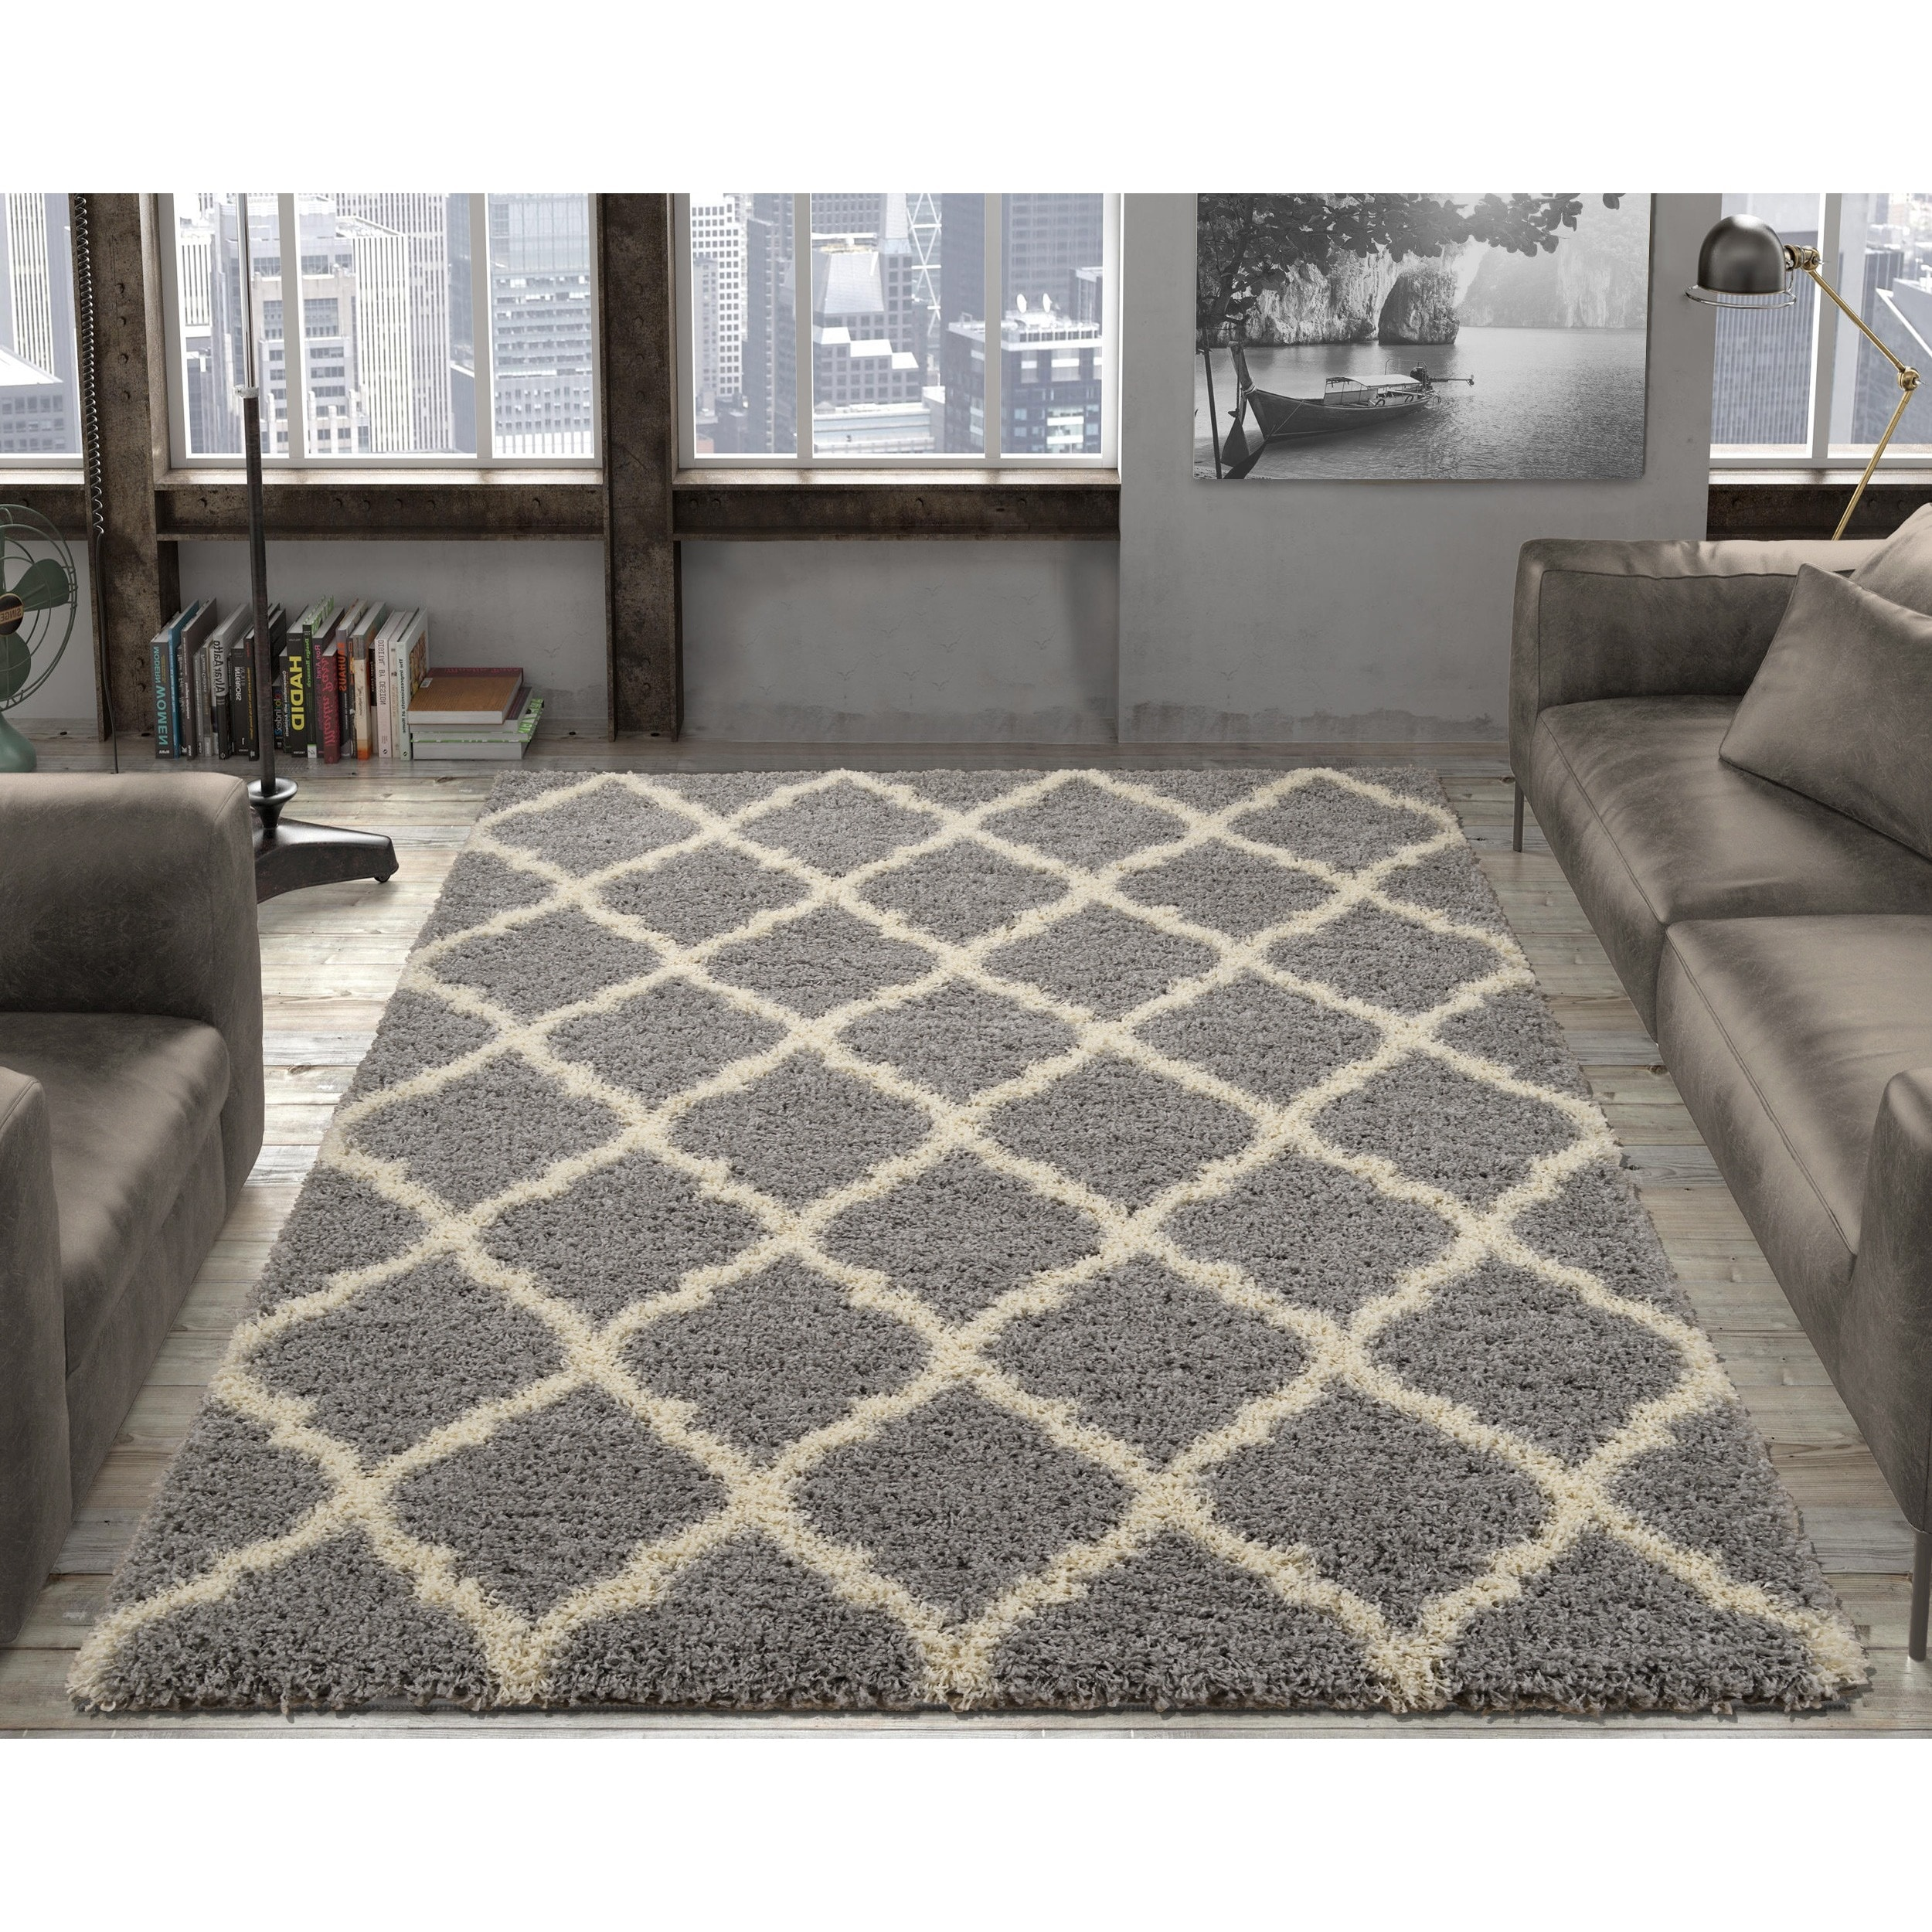 Shop ottomanson ultimate collection moroccan trellis design shag area rug on sale free shipping on orders over 45 overstock com 10202477